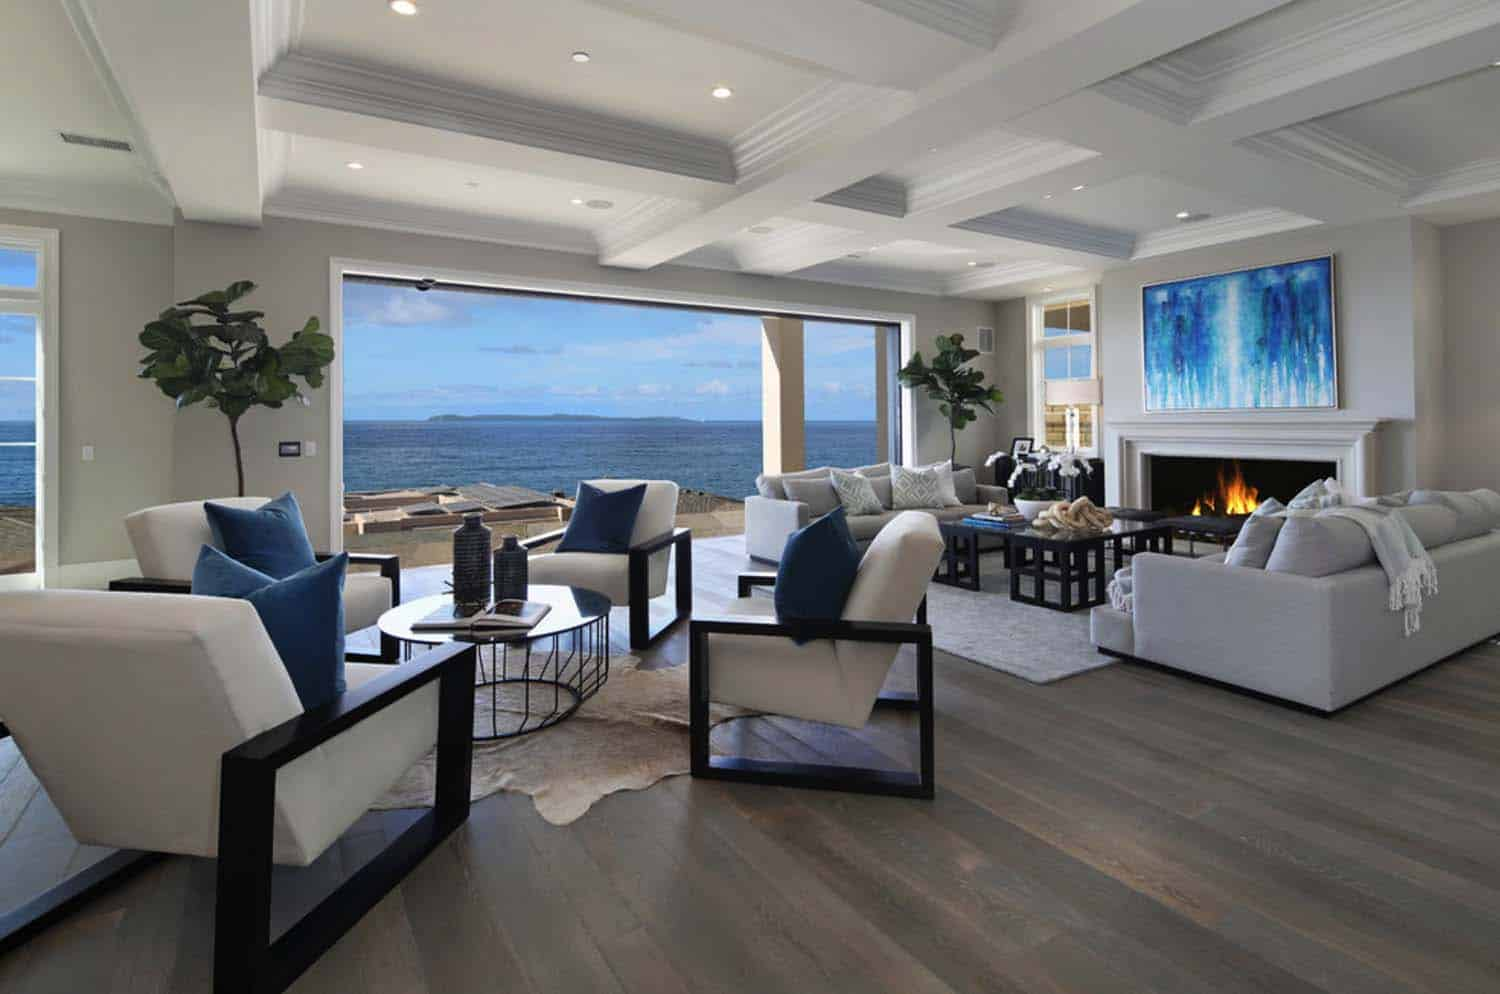 Get The Look: Dreamy Beach House Interiors - Jessica Elizabeth on House Interior Ideas  id=79151